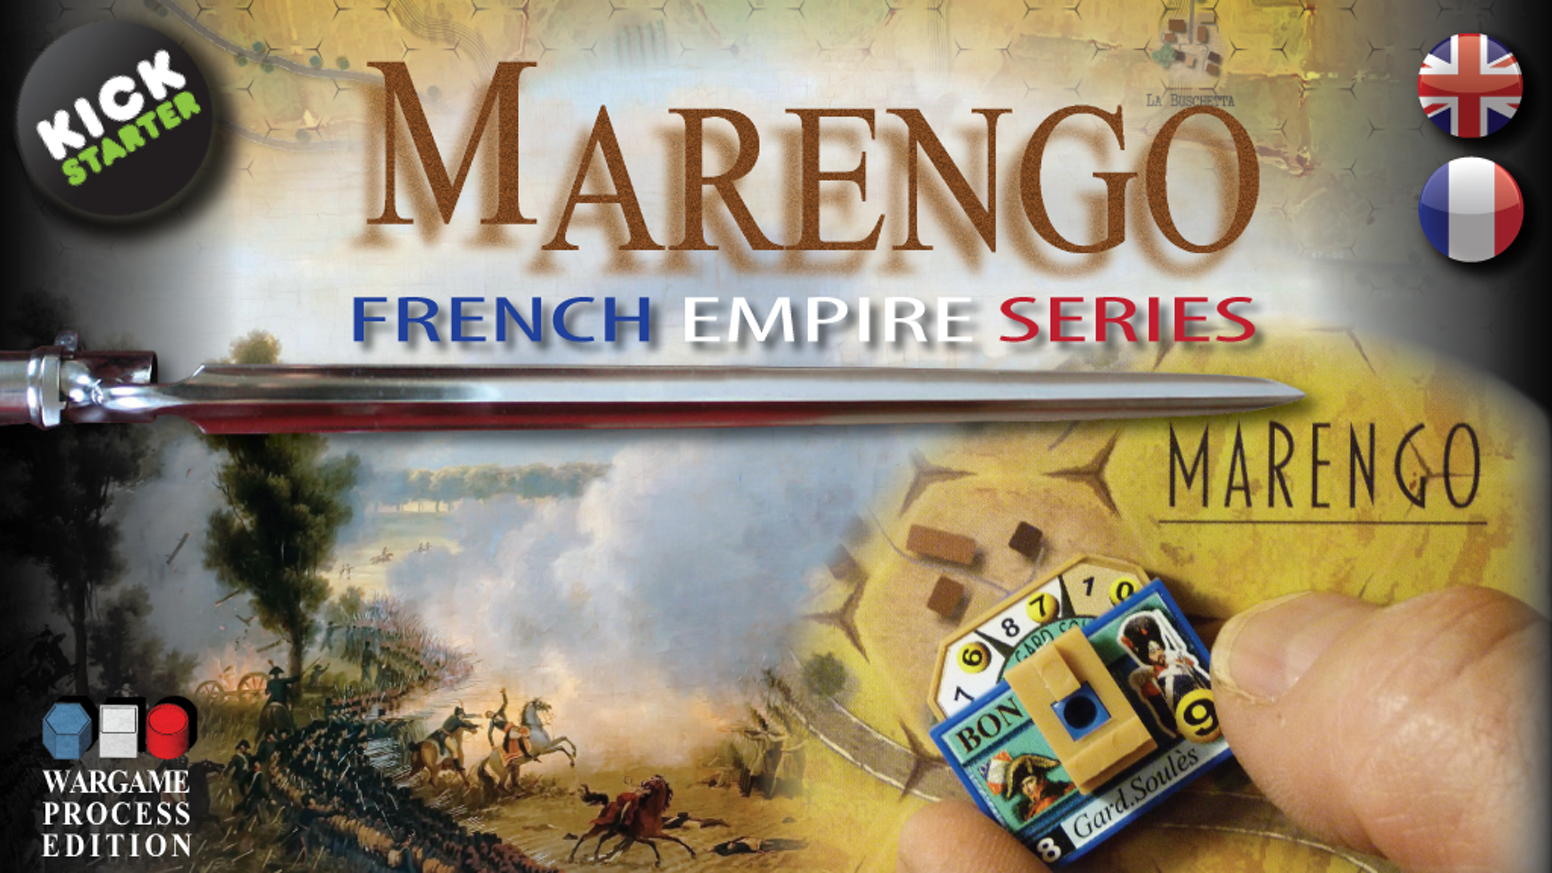 A dynamic, fluid and innovative wargame that accurately simulates historical battles.